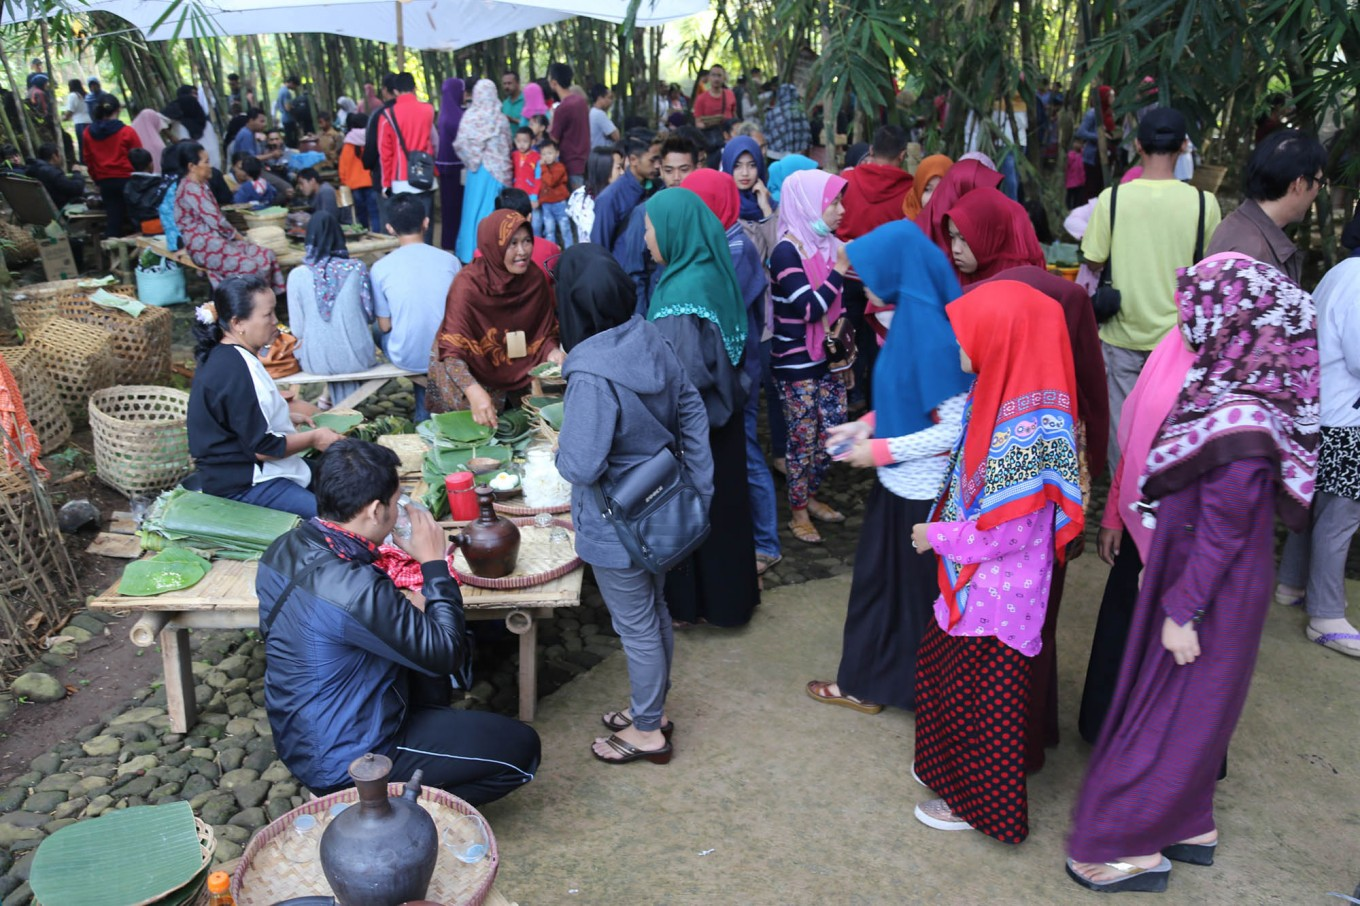 Visitors queue to buy Caruban village traditional cuisines at Papringan Market. JP/Ganug Nugroho Adi